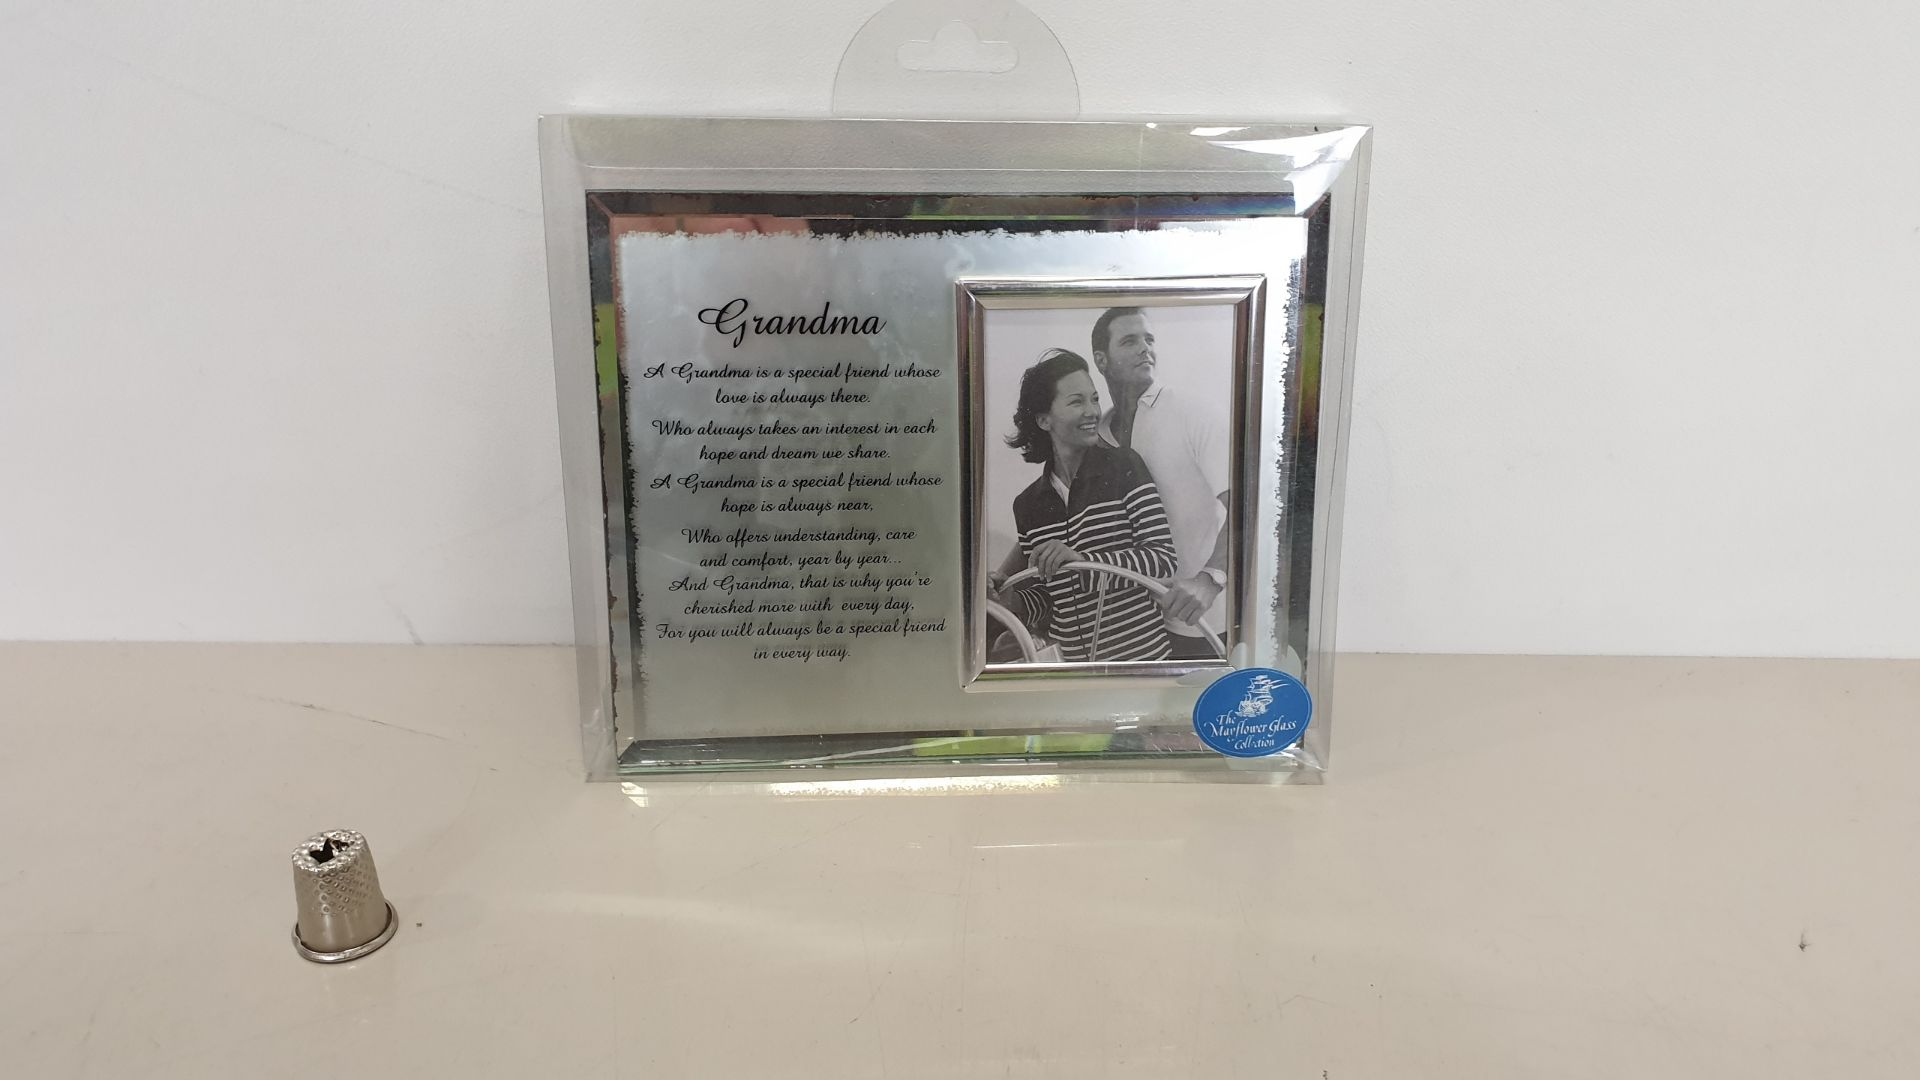 Lot 617 - 112 X BRAND NEW 'THE MAYFLOWER GLASS COLLECTION' GRANDMA MESSAGE FRAME - IN 2 BOXES AND 16 LOOSE